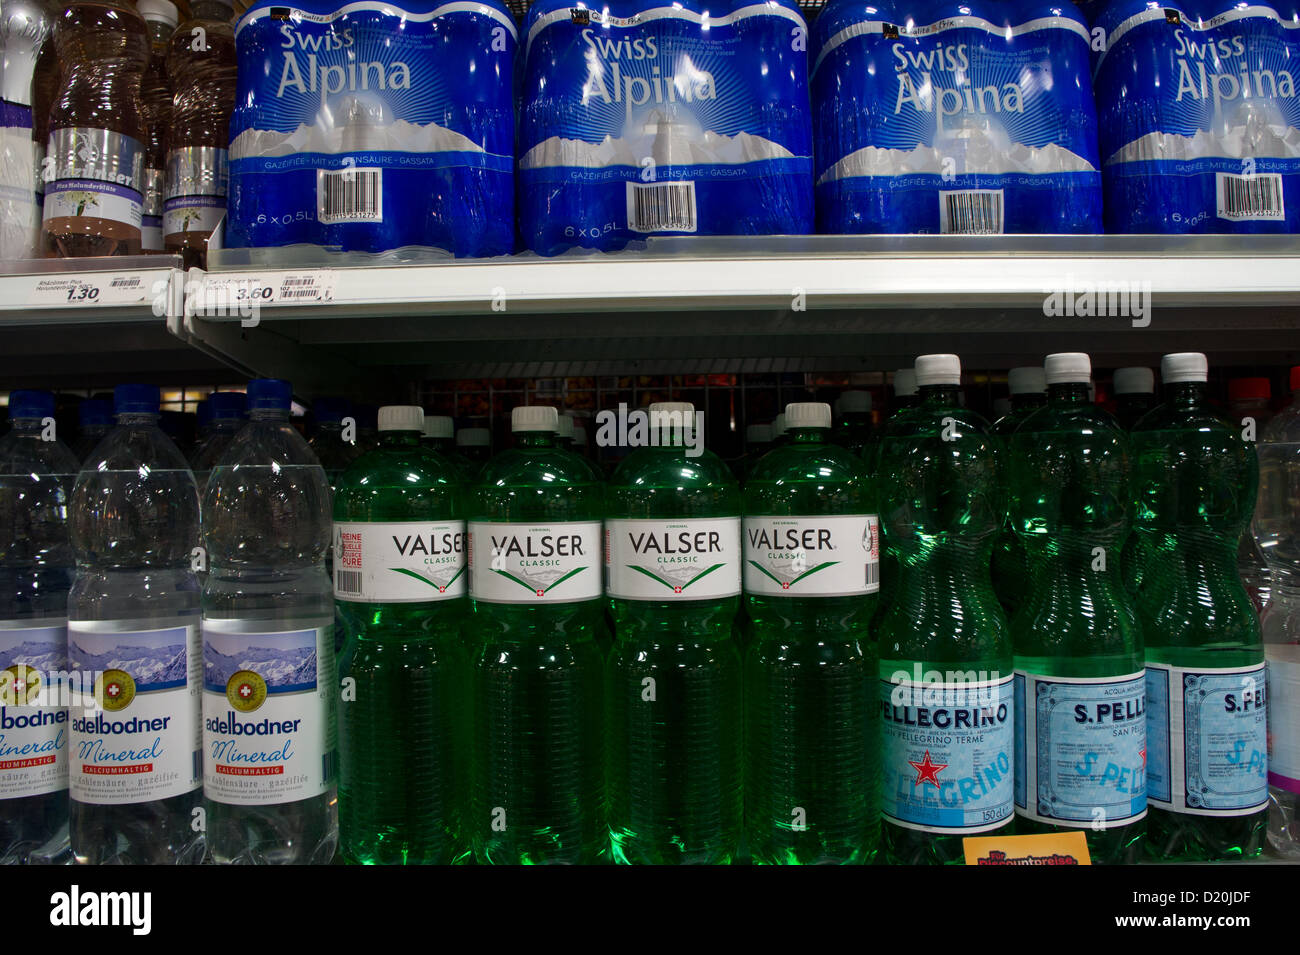 Mineralwater for sale in grocery store, Switzerland - Stock Image